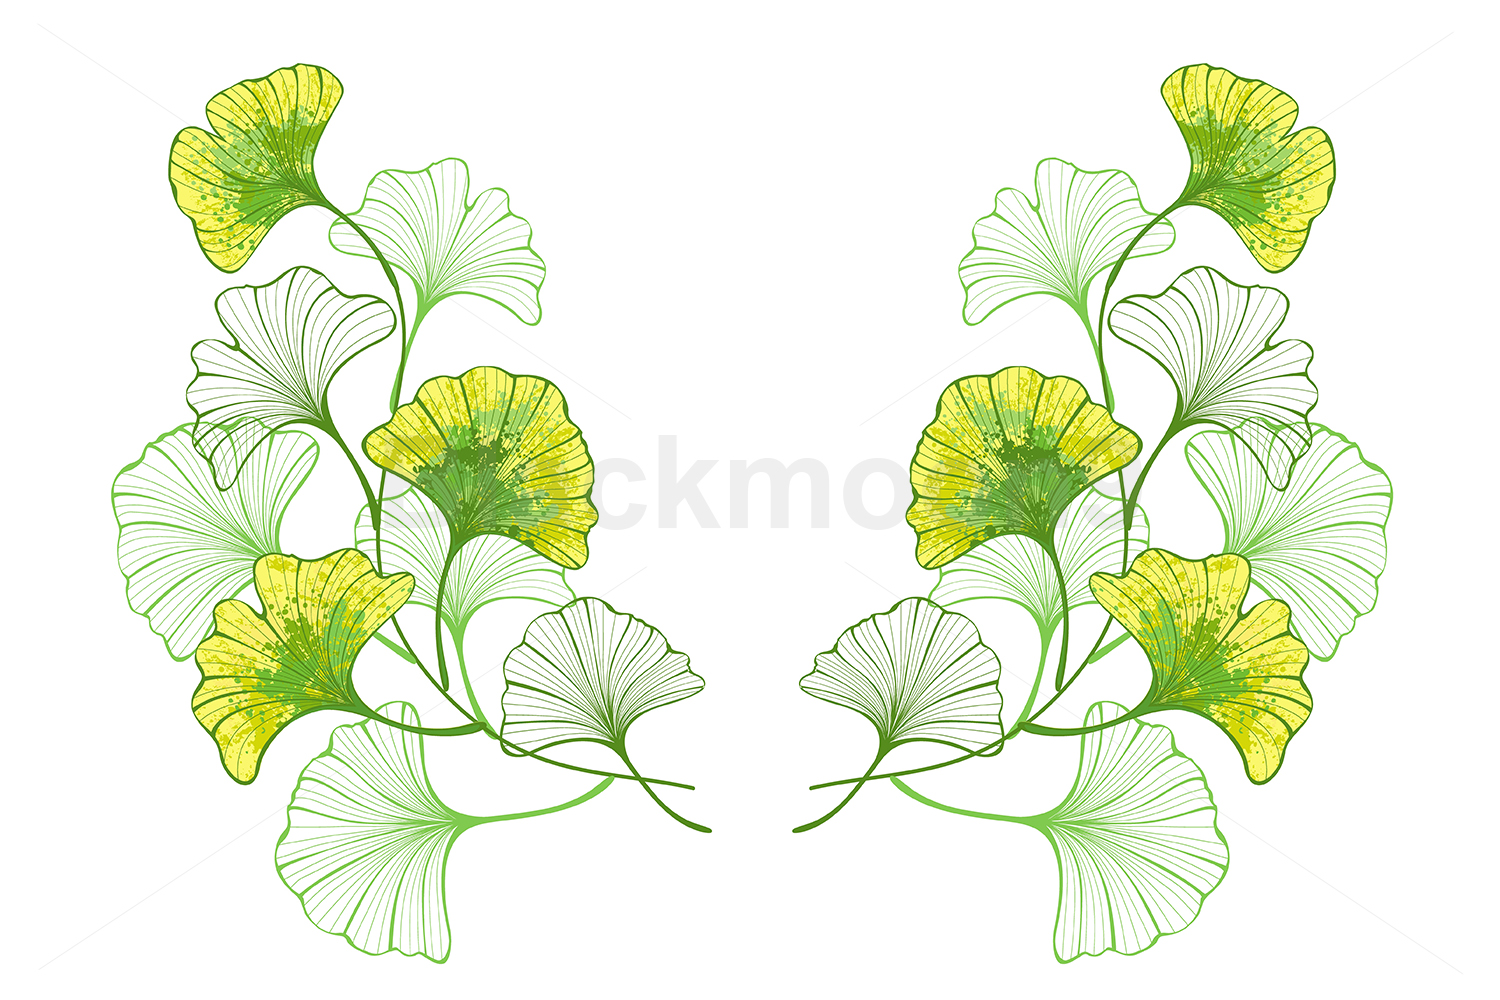 Symmetrical Pattern of Colorful Leaves of Ginko Biloba example image 1